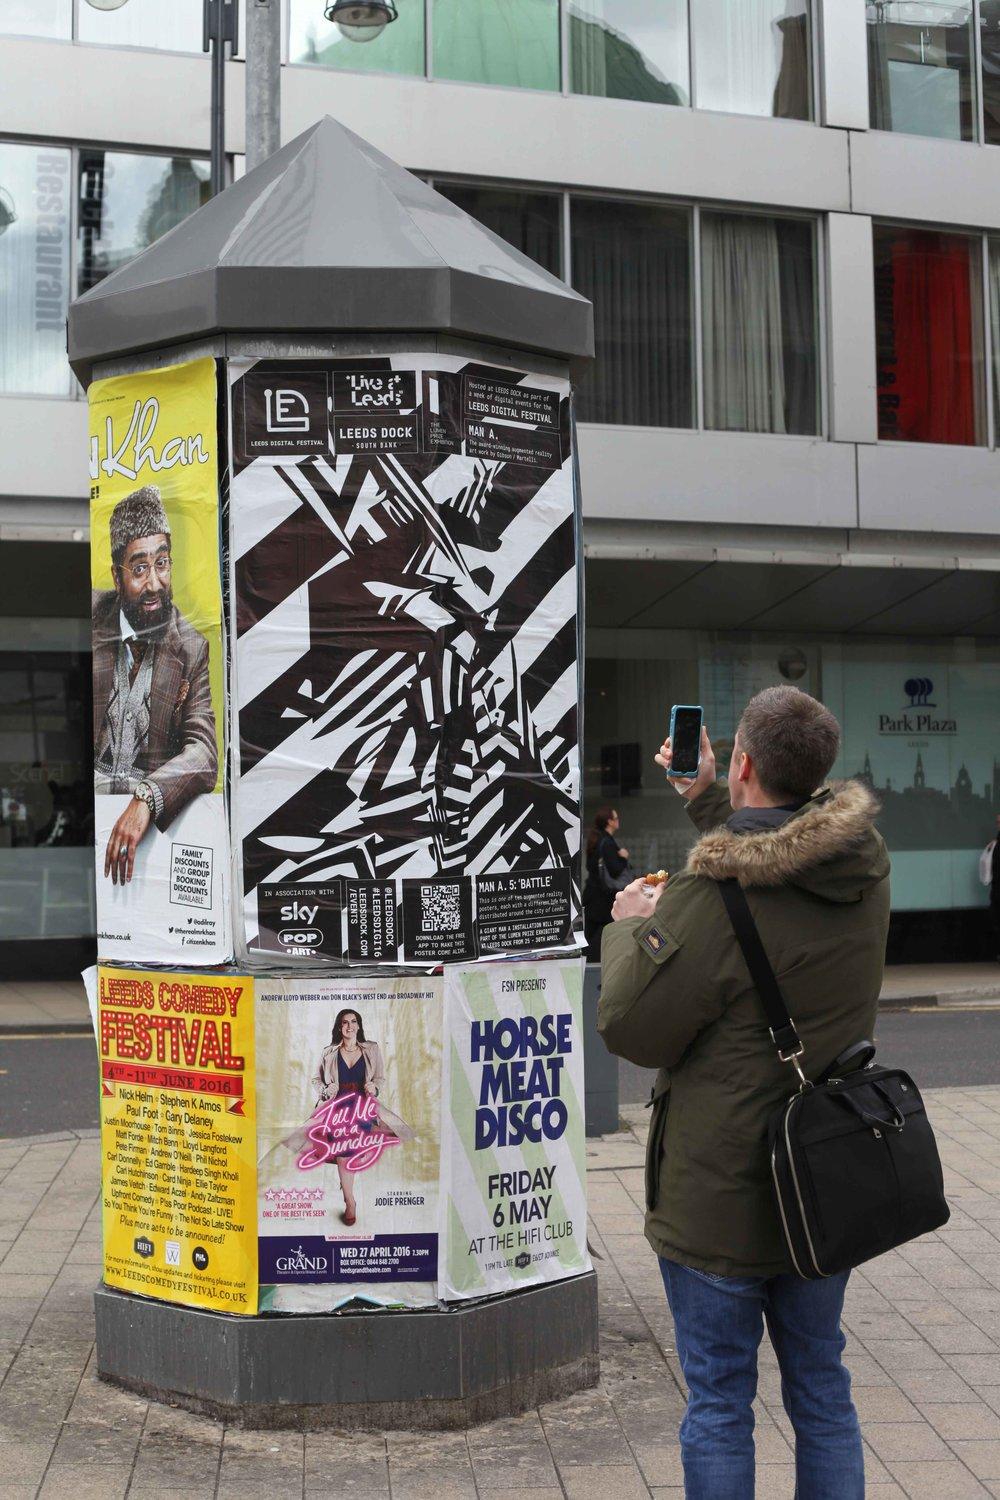 Unique variations of 'MAN-A' featured on large format posters promoting the Leeds Digital Festival / Lumen Prize Exhibition.